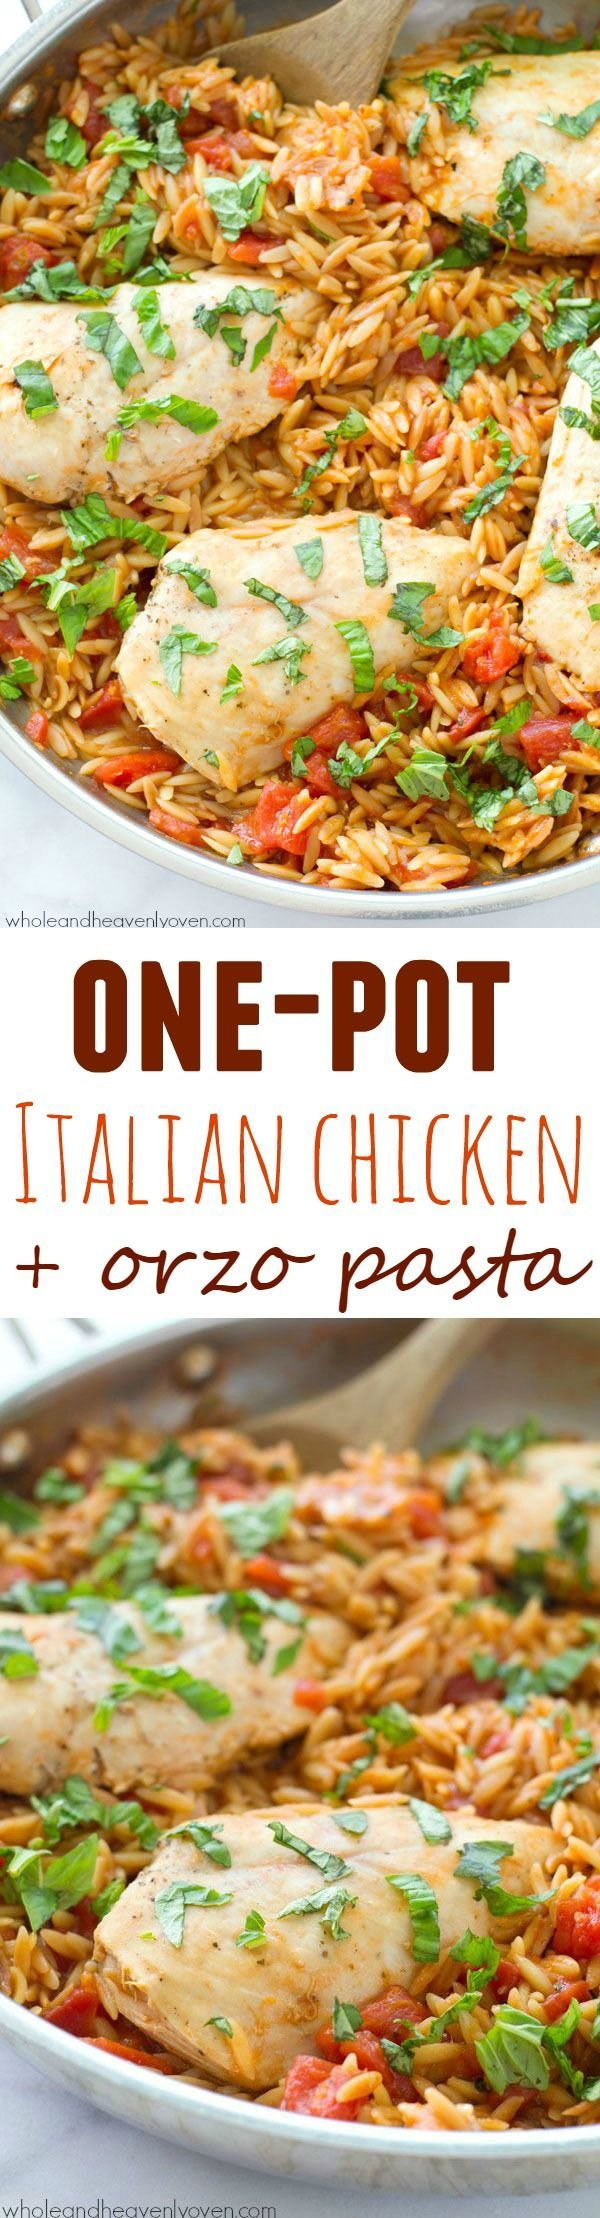 Ready in 30 minutes and made in only one pot, this Italian-style chicken and orzo pasta is total comfort food that anyone can make it's so easy! /WholeHeavenly/